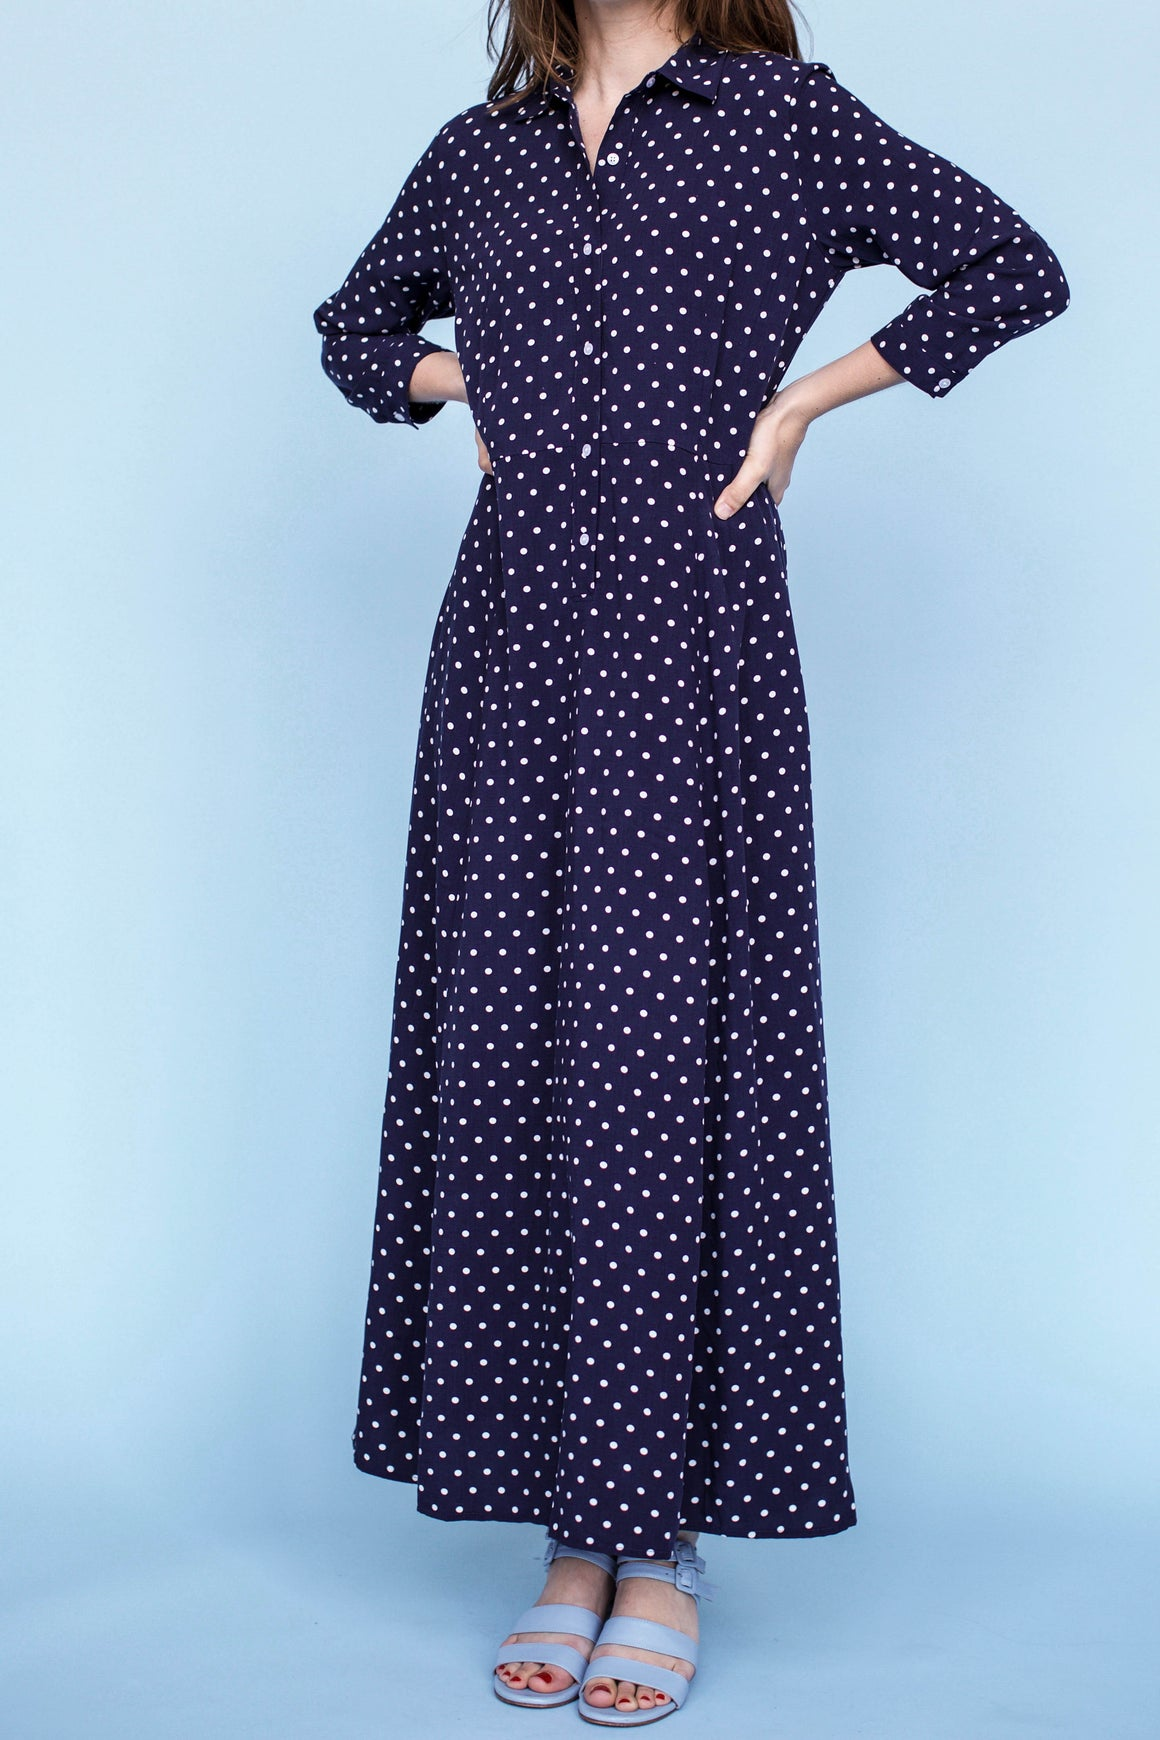 Sonnet James - SABRINA - NAVY DOT - Dress